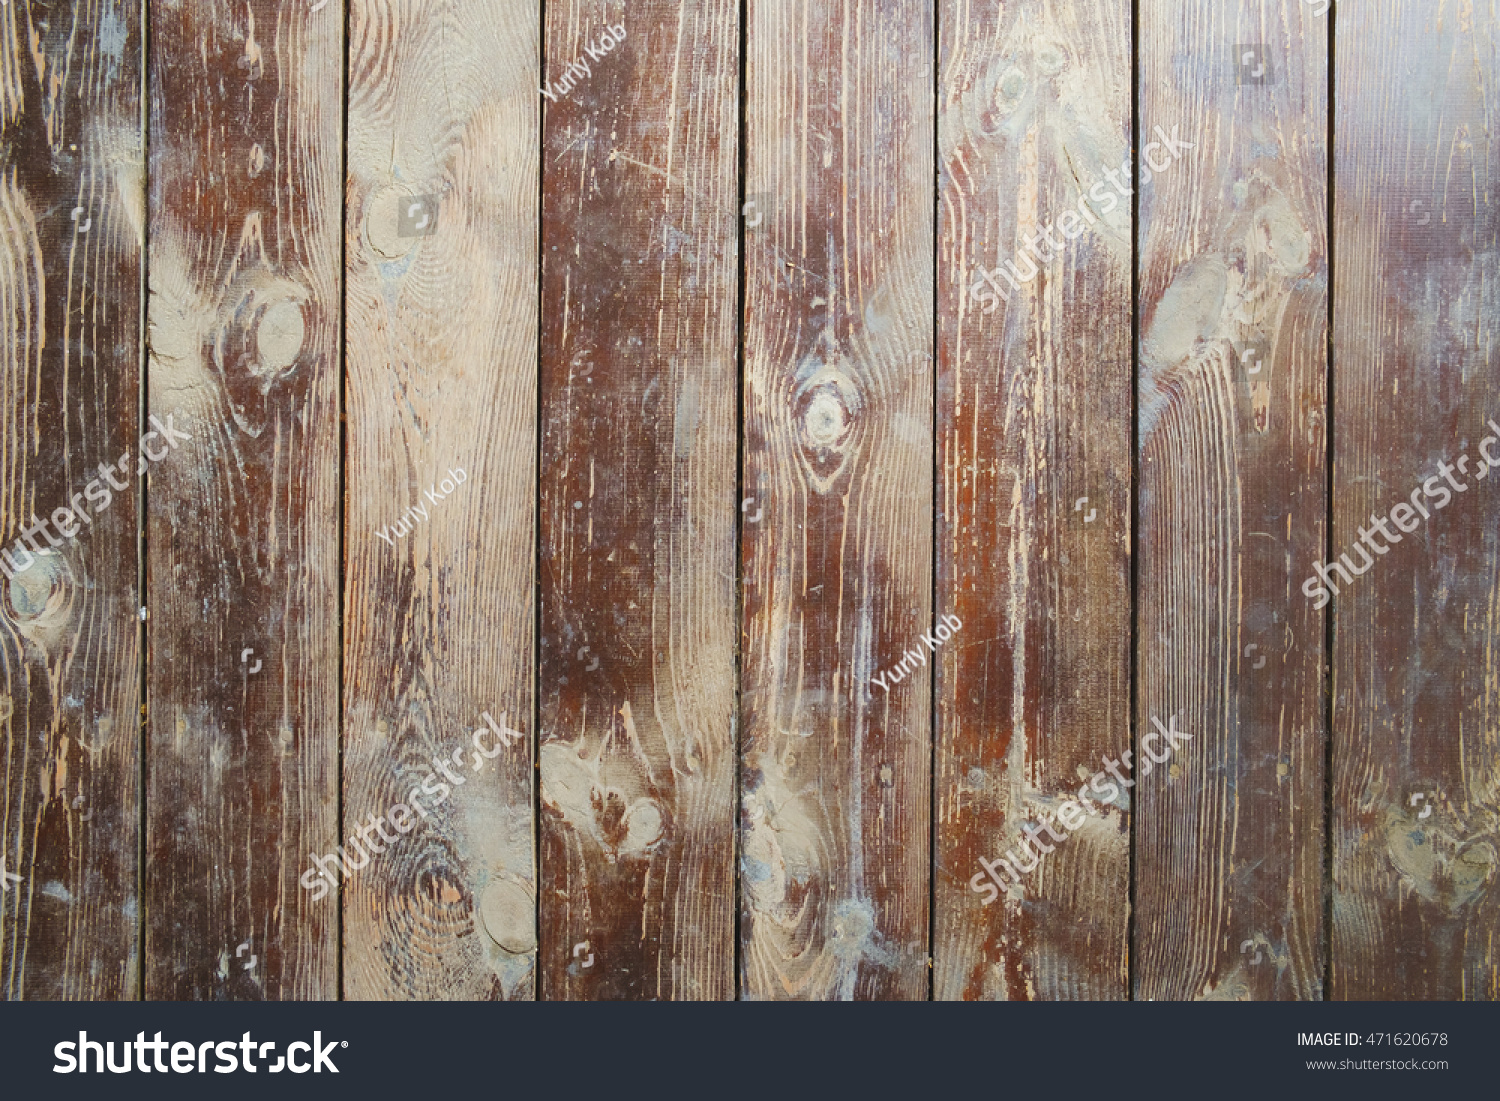 rustic brown wood background - photo #15